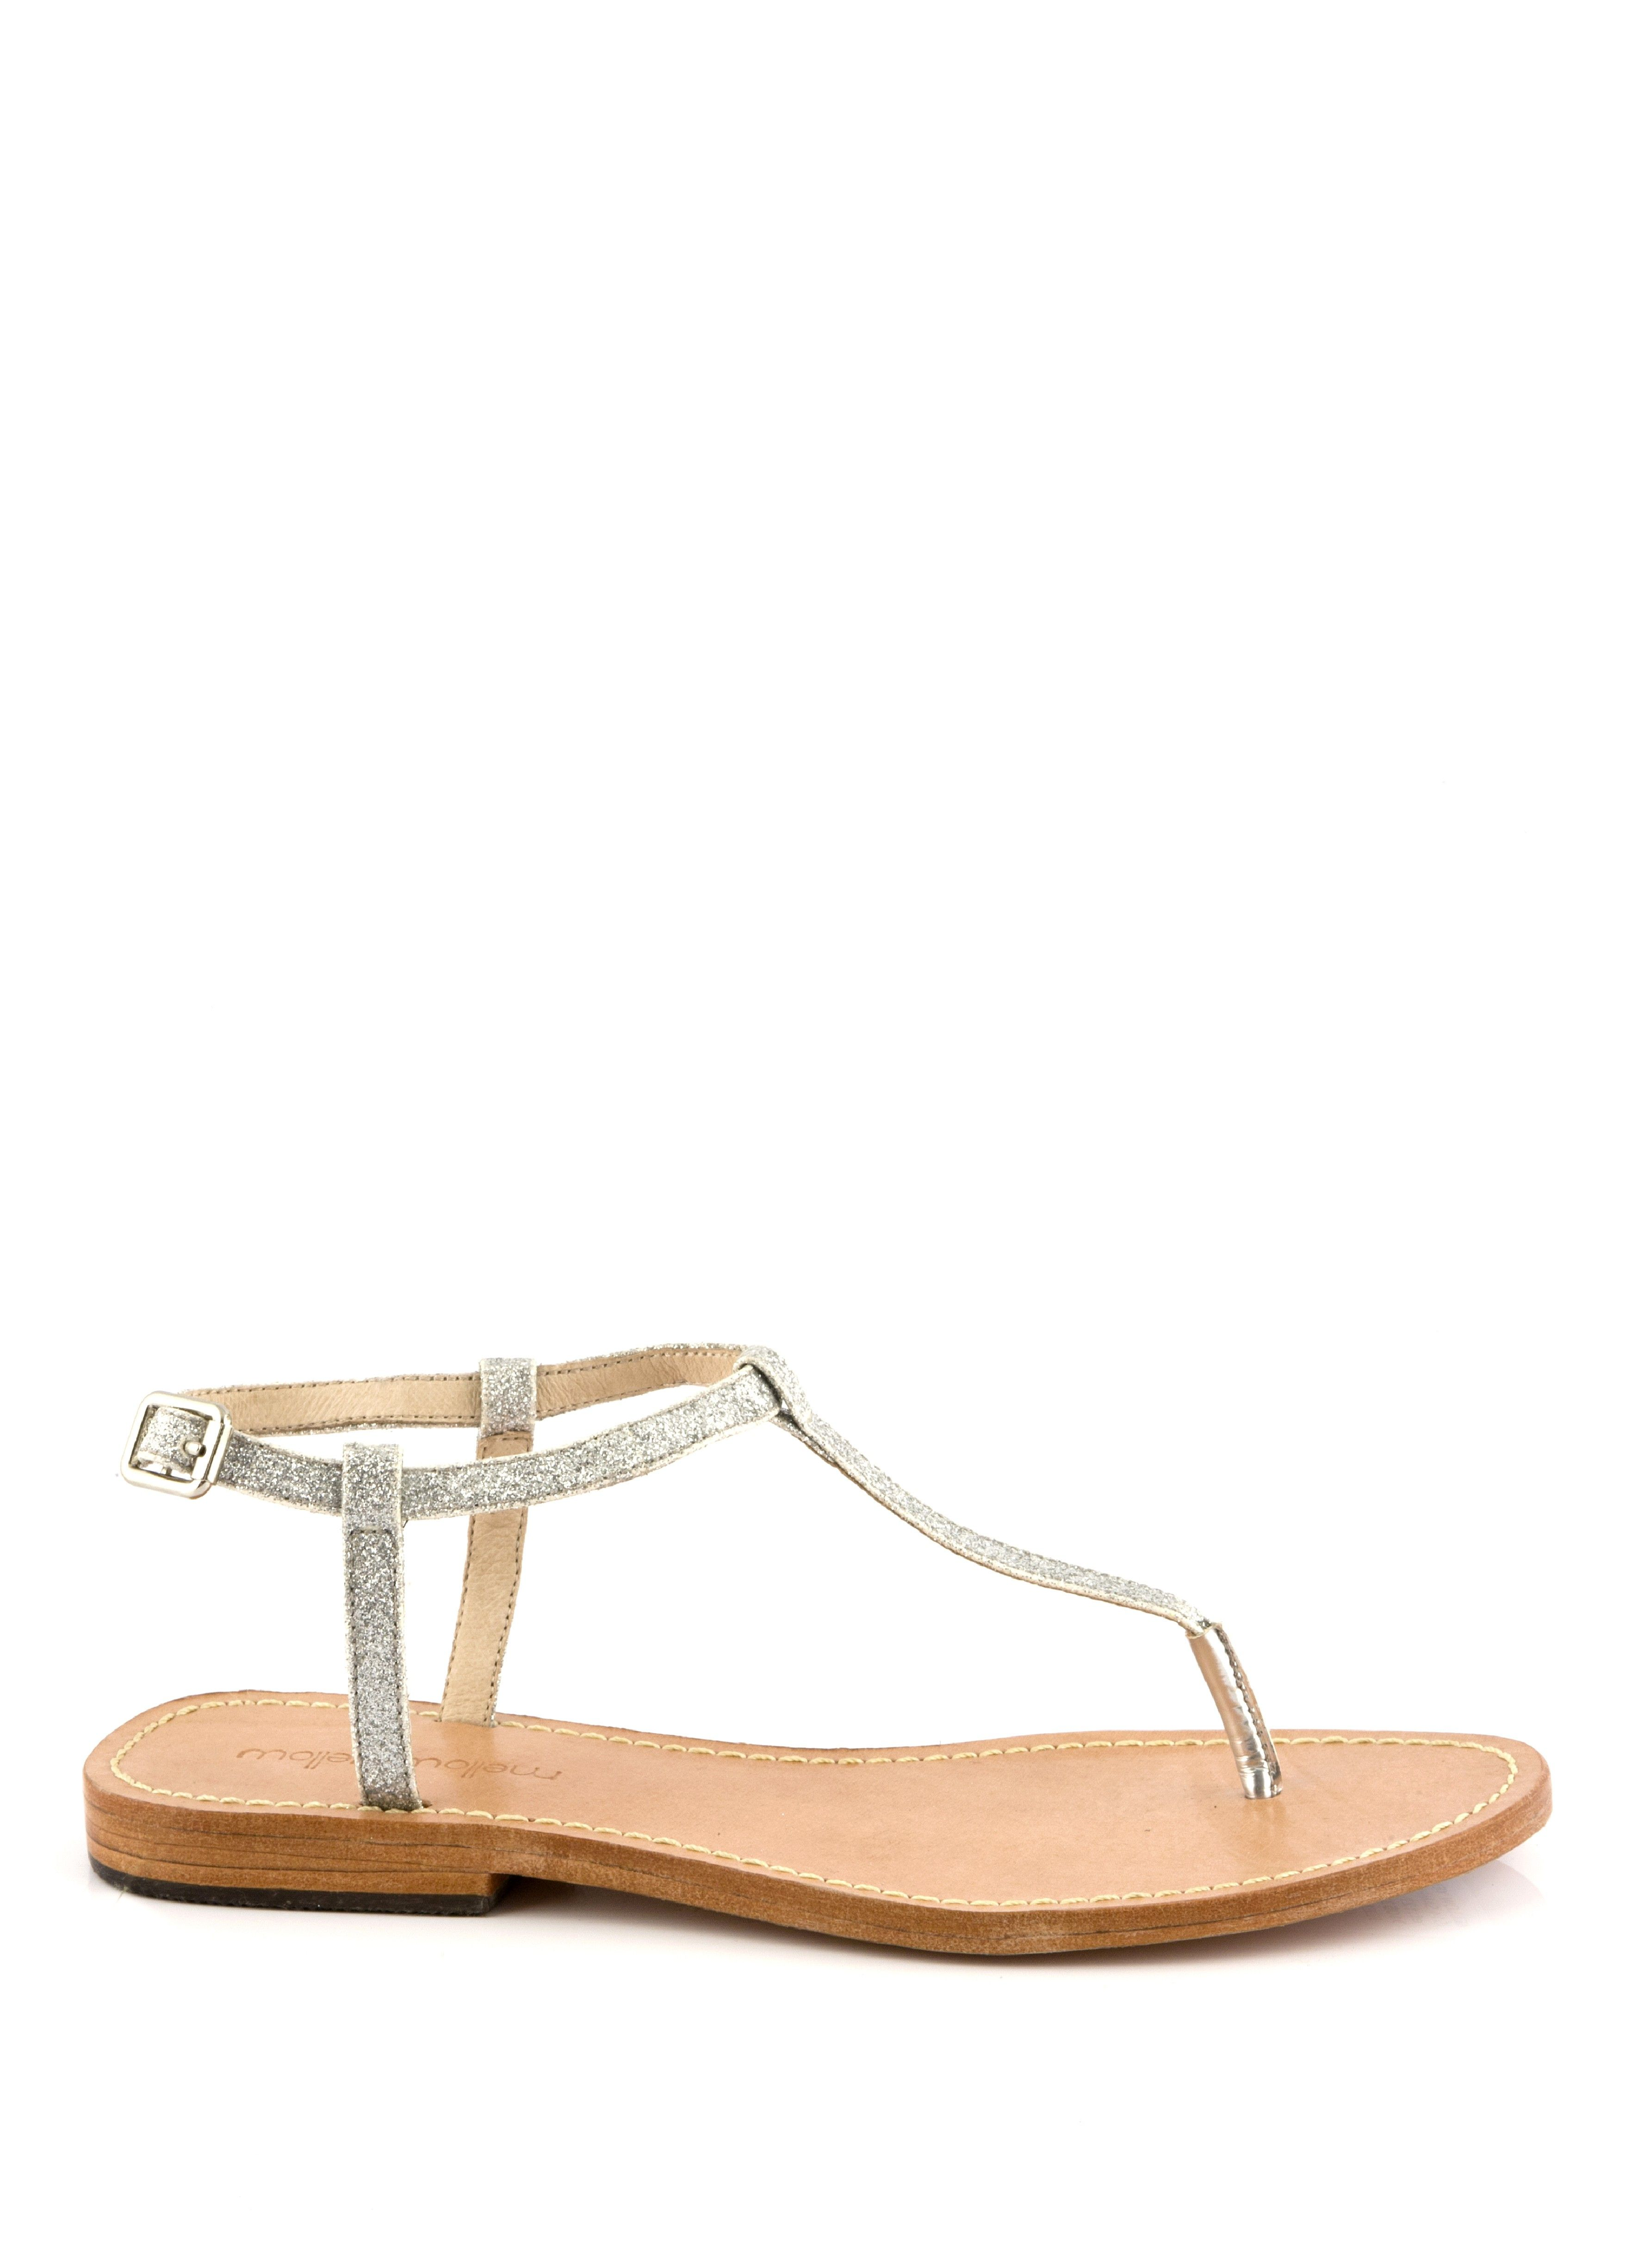 sandale plate pabling argent - sandales plates - chaussures femme